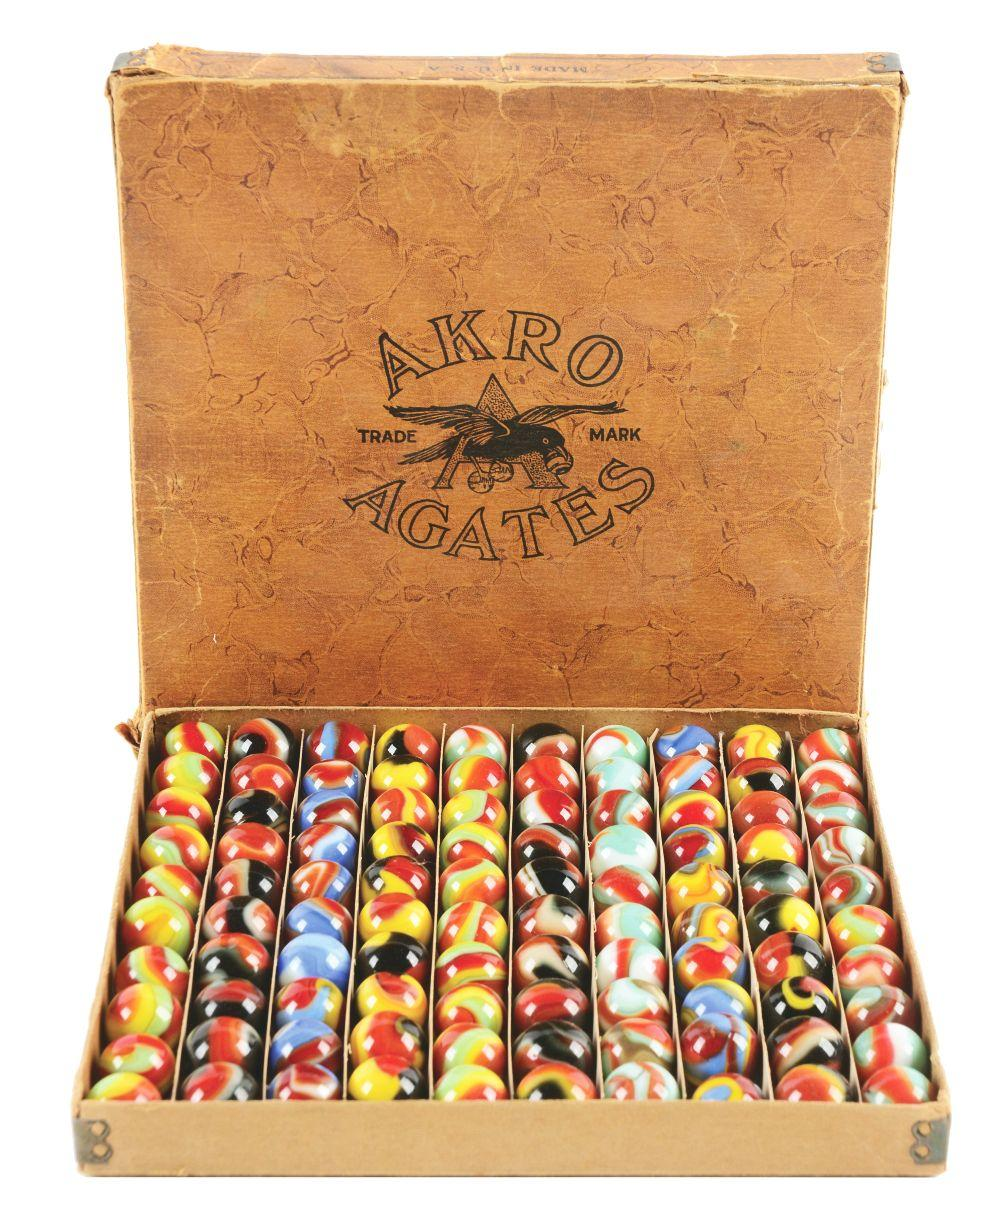 Akro Agate Marbles No.1 Box.